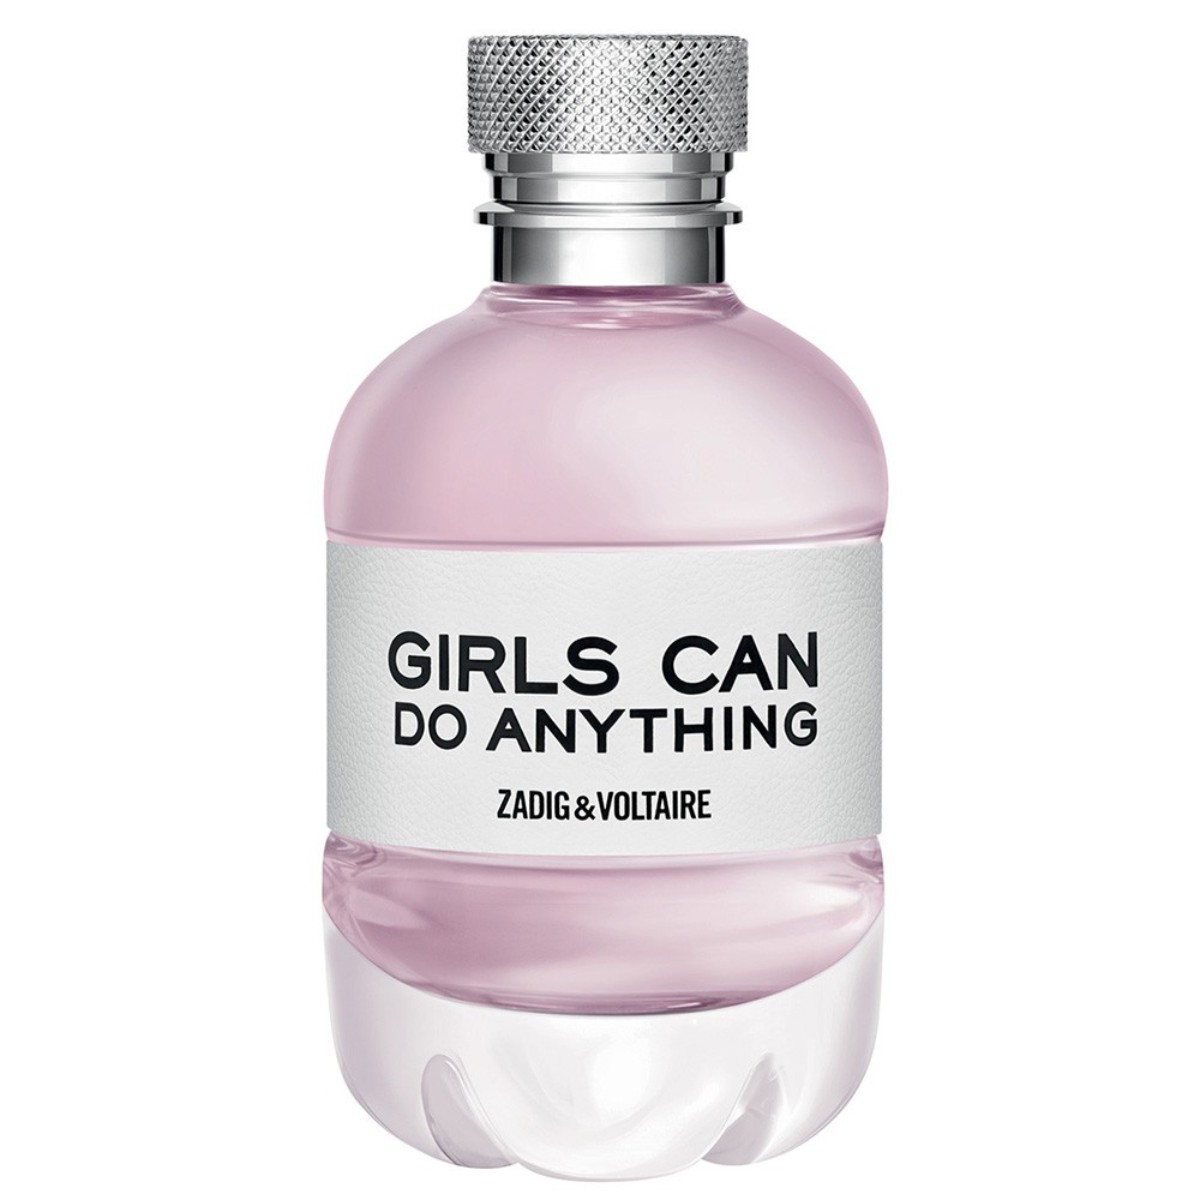 Girls Can Do Anything, eau de parfum, 50ml, € 79, Zadig & Voltaire